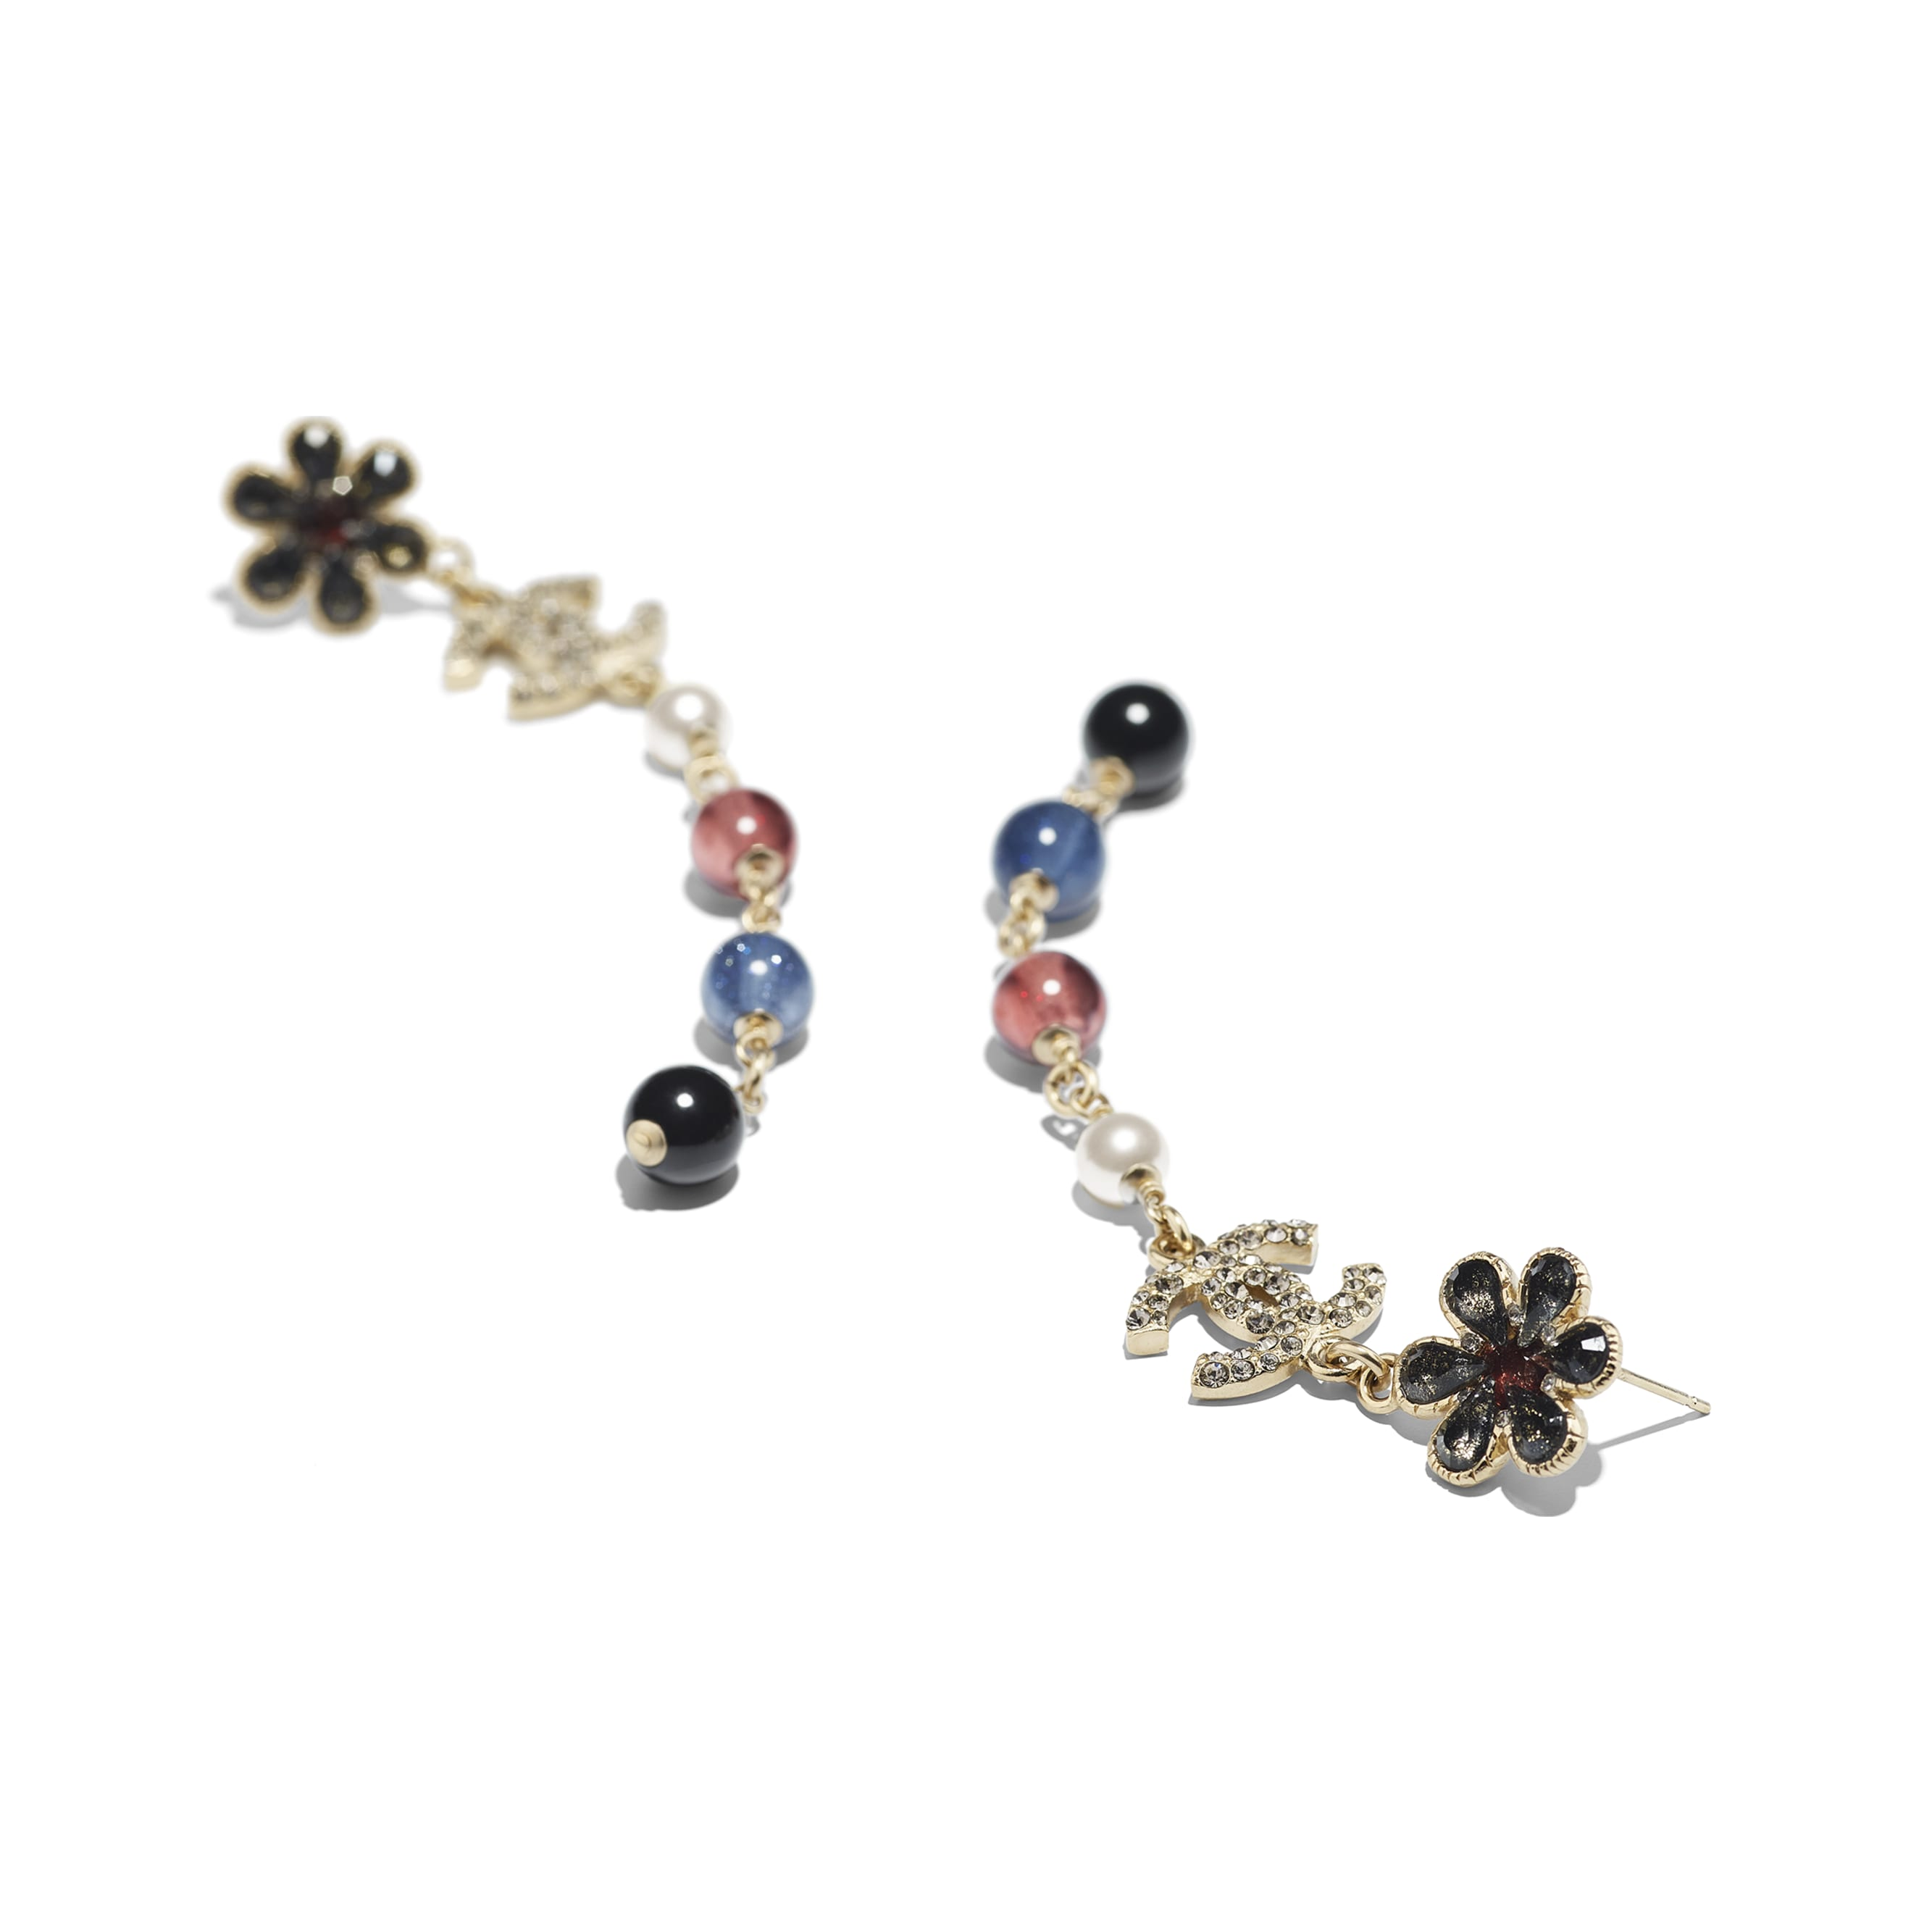 Earrings - Gold, Pearly White, Crystal, Navy Blue & Burgundy - Metal, Glass Pearls & Diamantés - Alternative view - see standard sized version